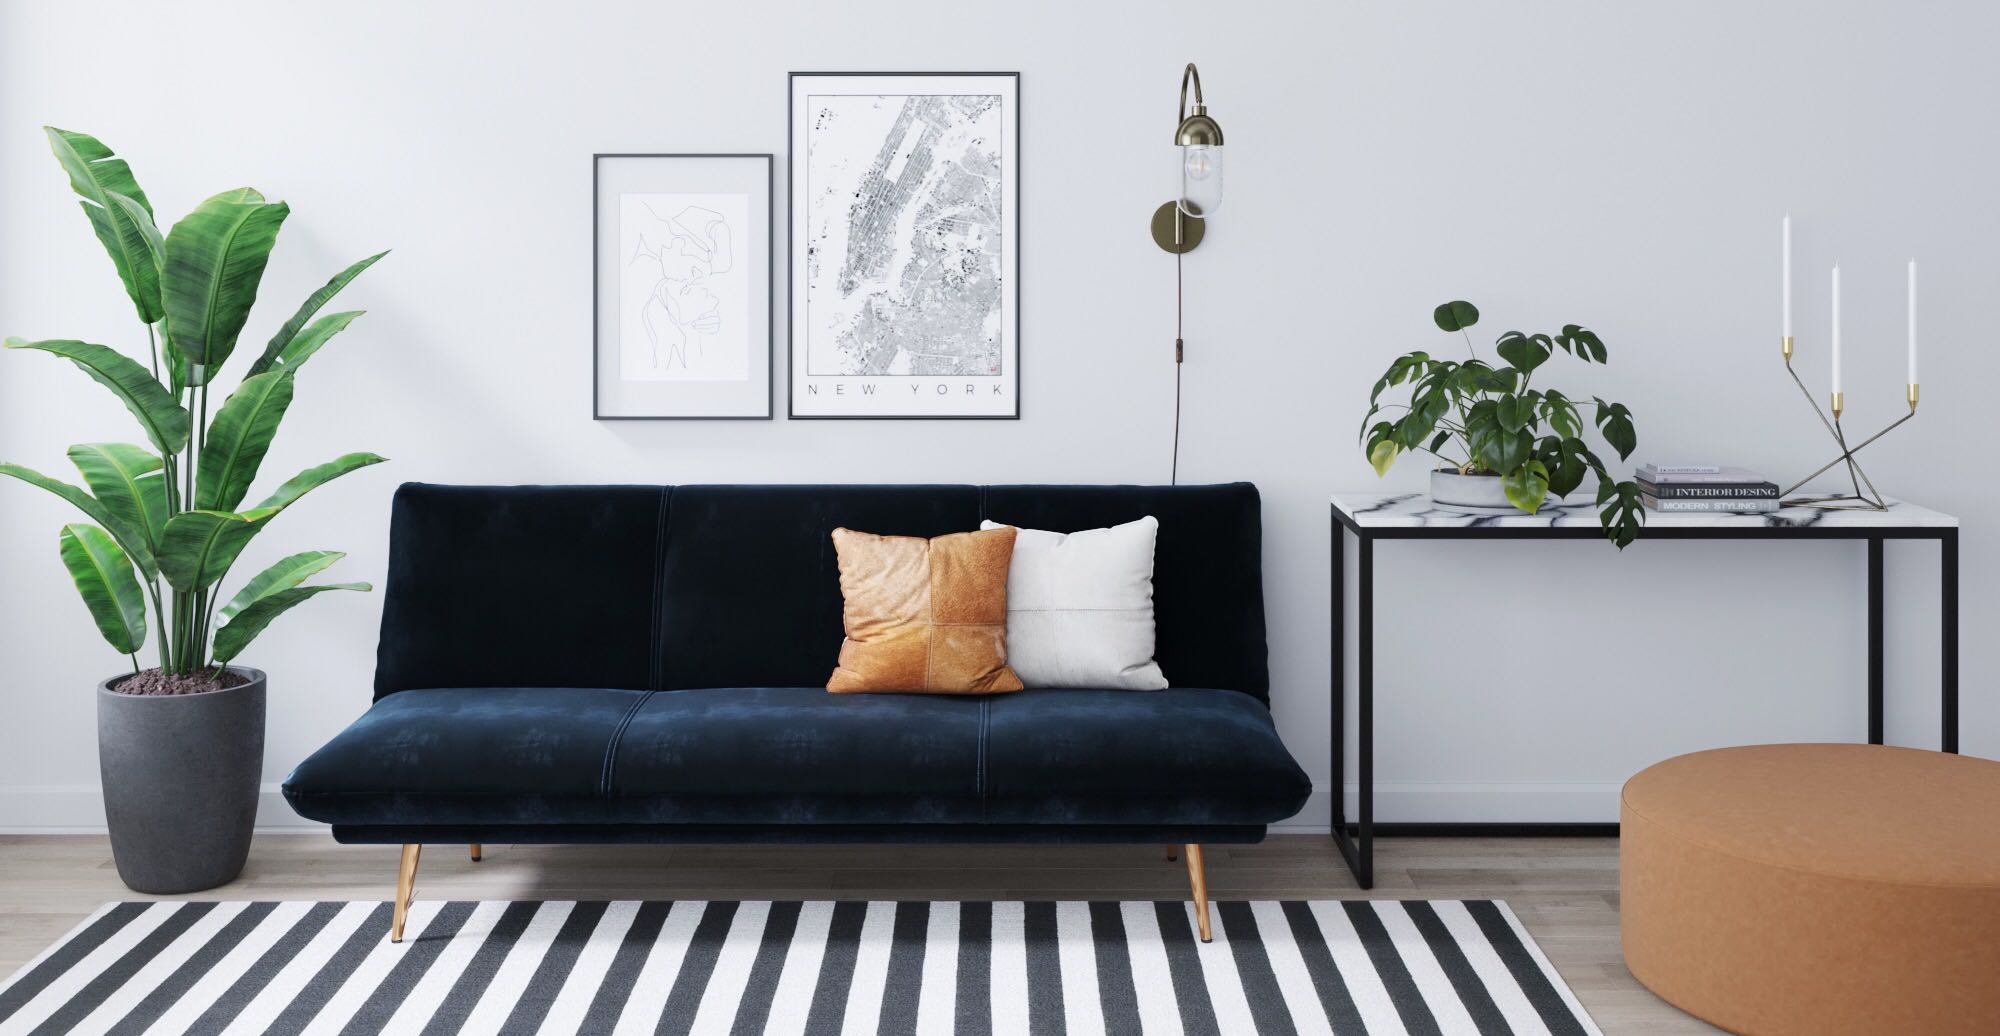 Brosa Lana Sofa Bed in Contemporary Styled Living Room